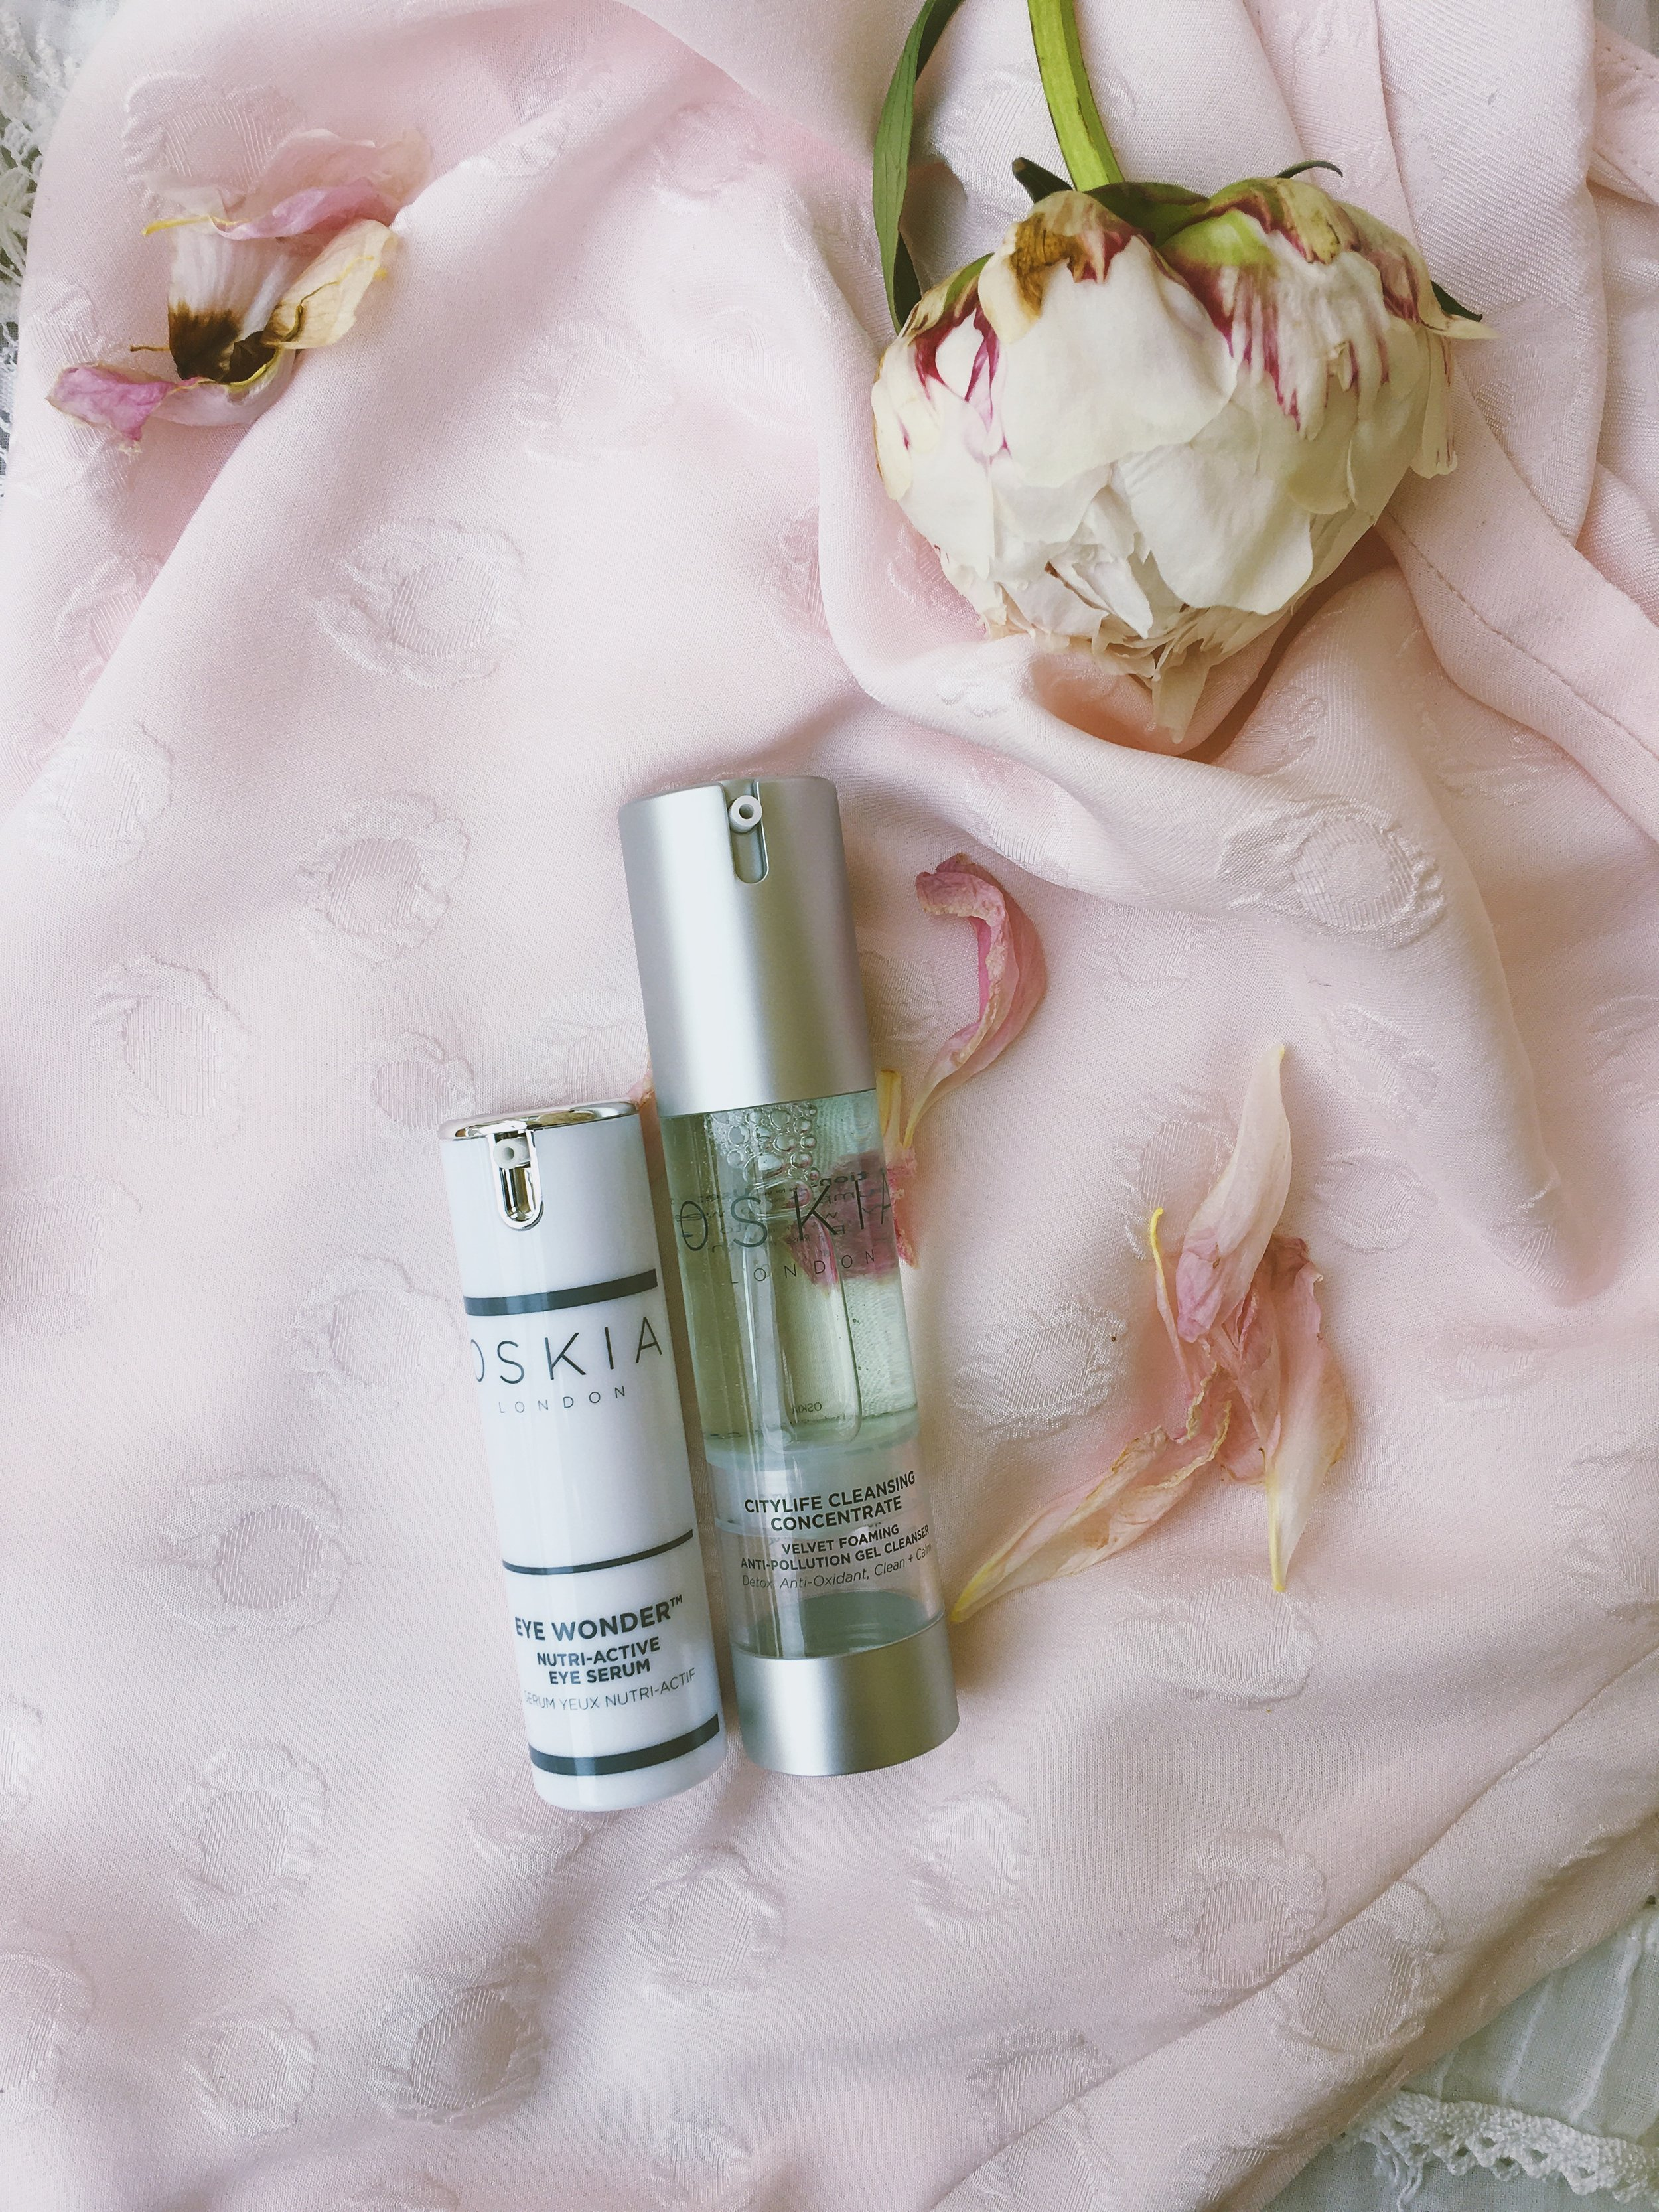 BEST FROM OSKIA SKINCARE